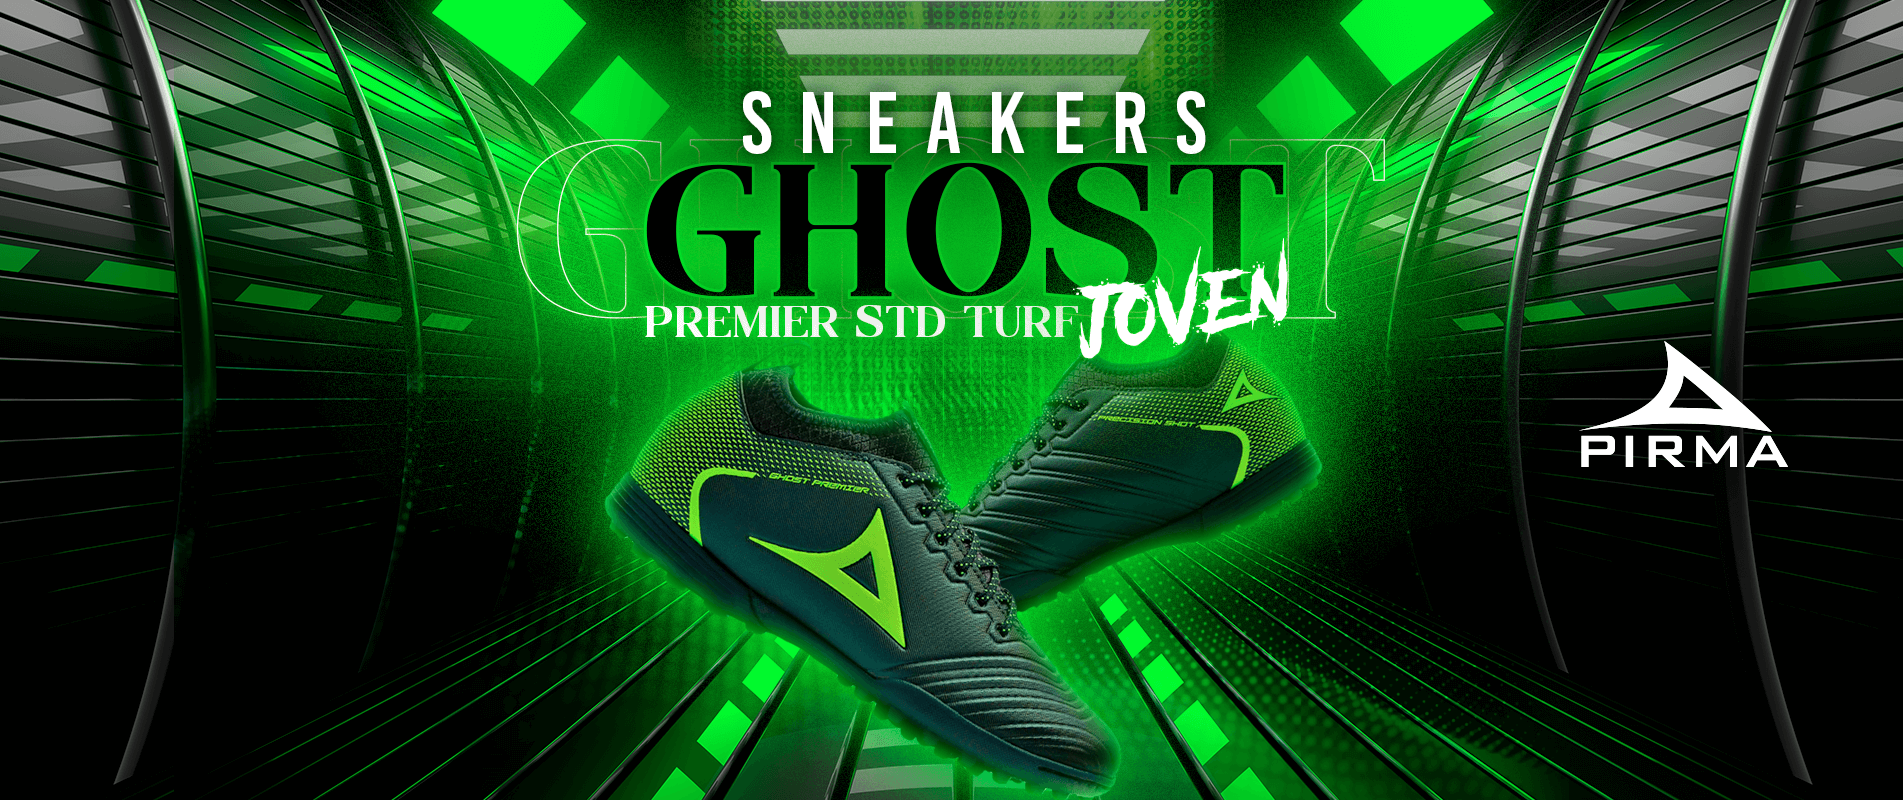 The Home Store - Caso de éxito